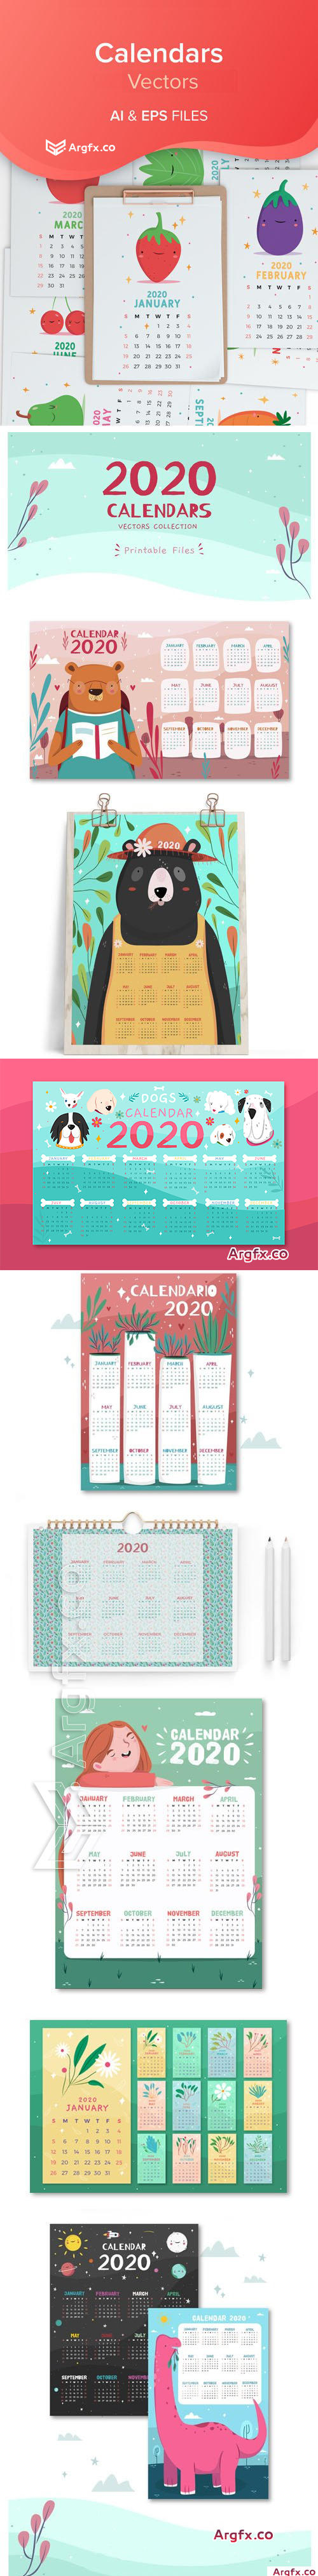 2020 Calendars Vector Collection 2